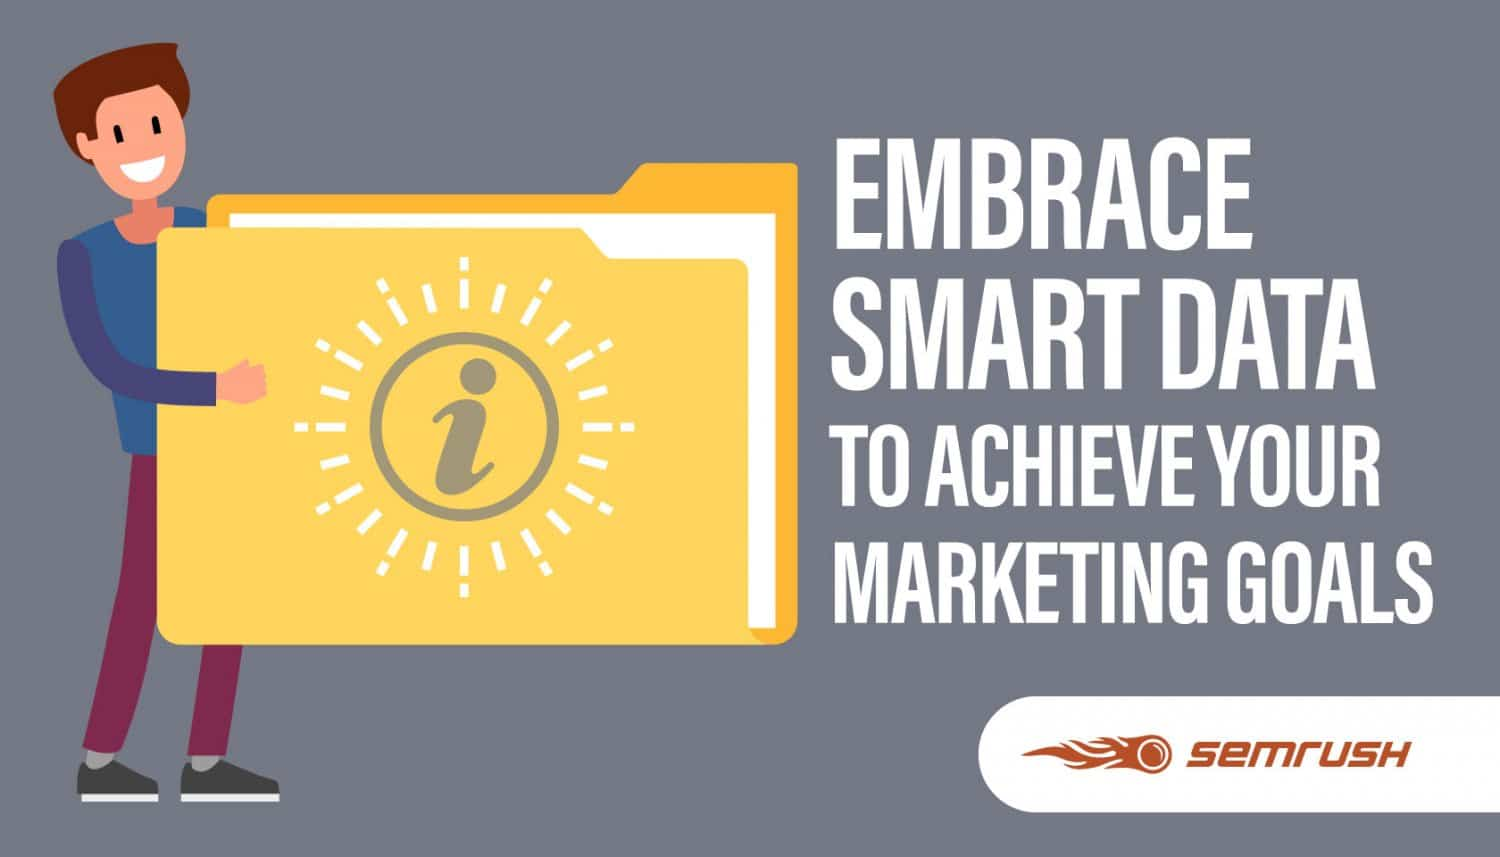 Embrace Smart Data to Achieve Your Marketing Goals